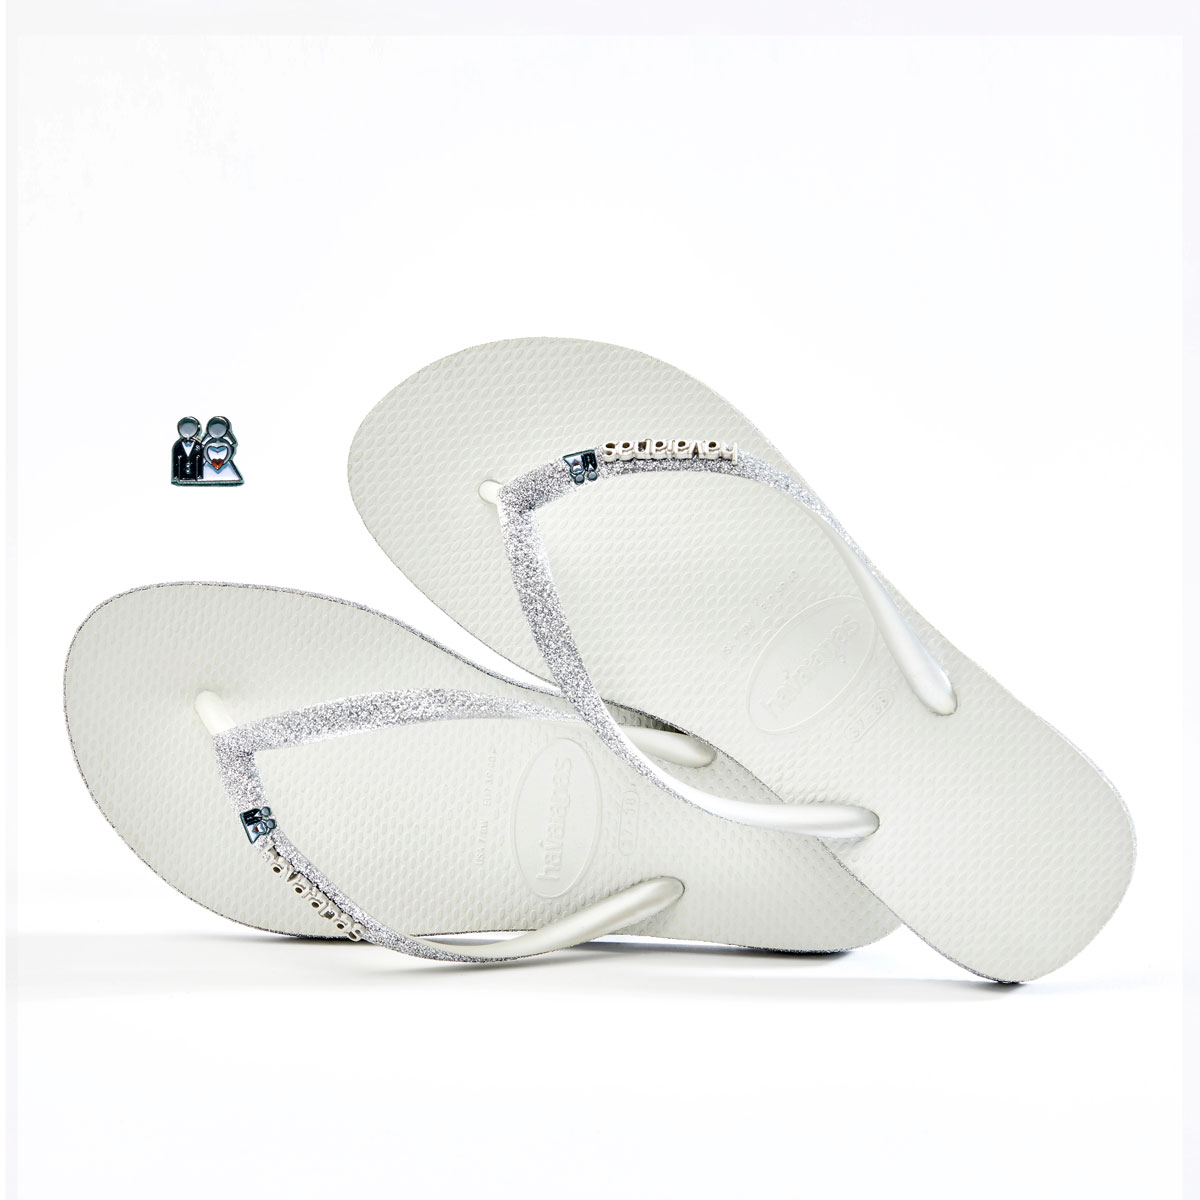 Havaianas White Sparkle Flip-Flops with Silver Bride & Groom Wedding